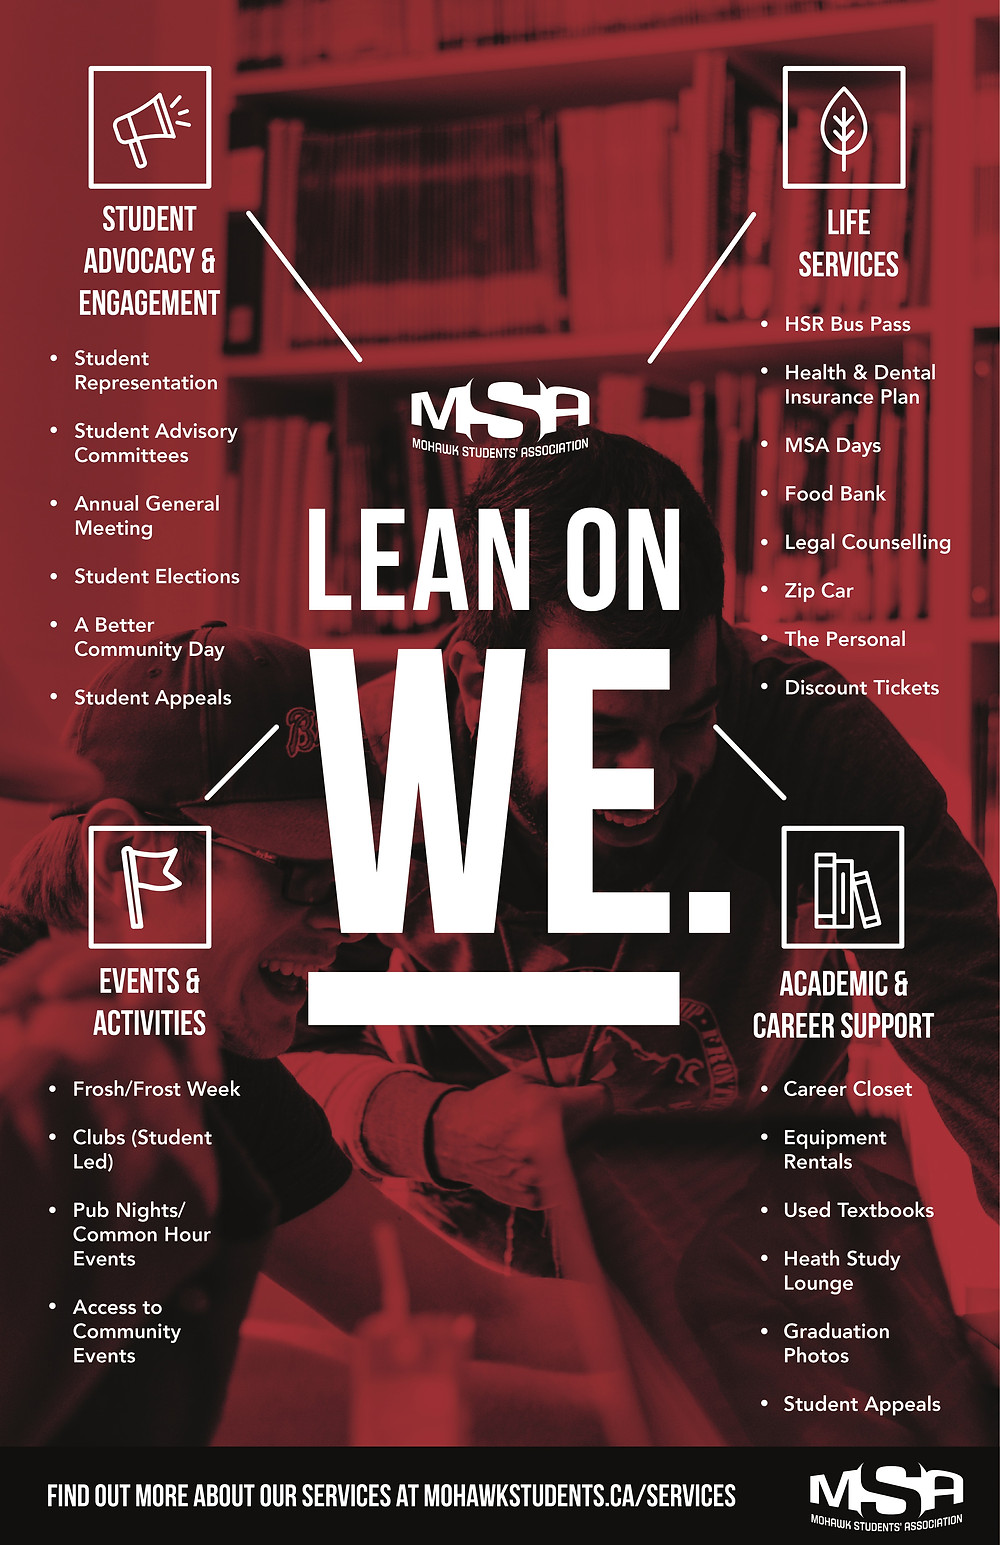 A graphic of all the services the MSA offers.